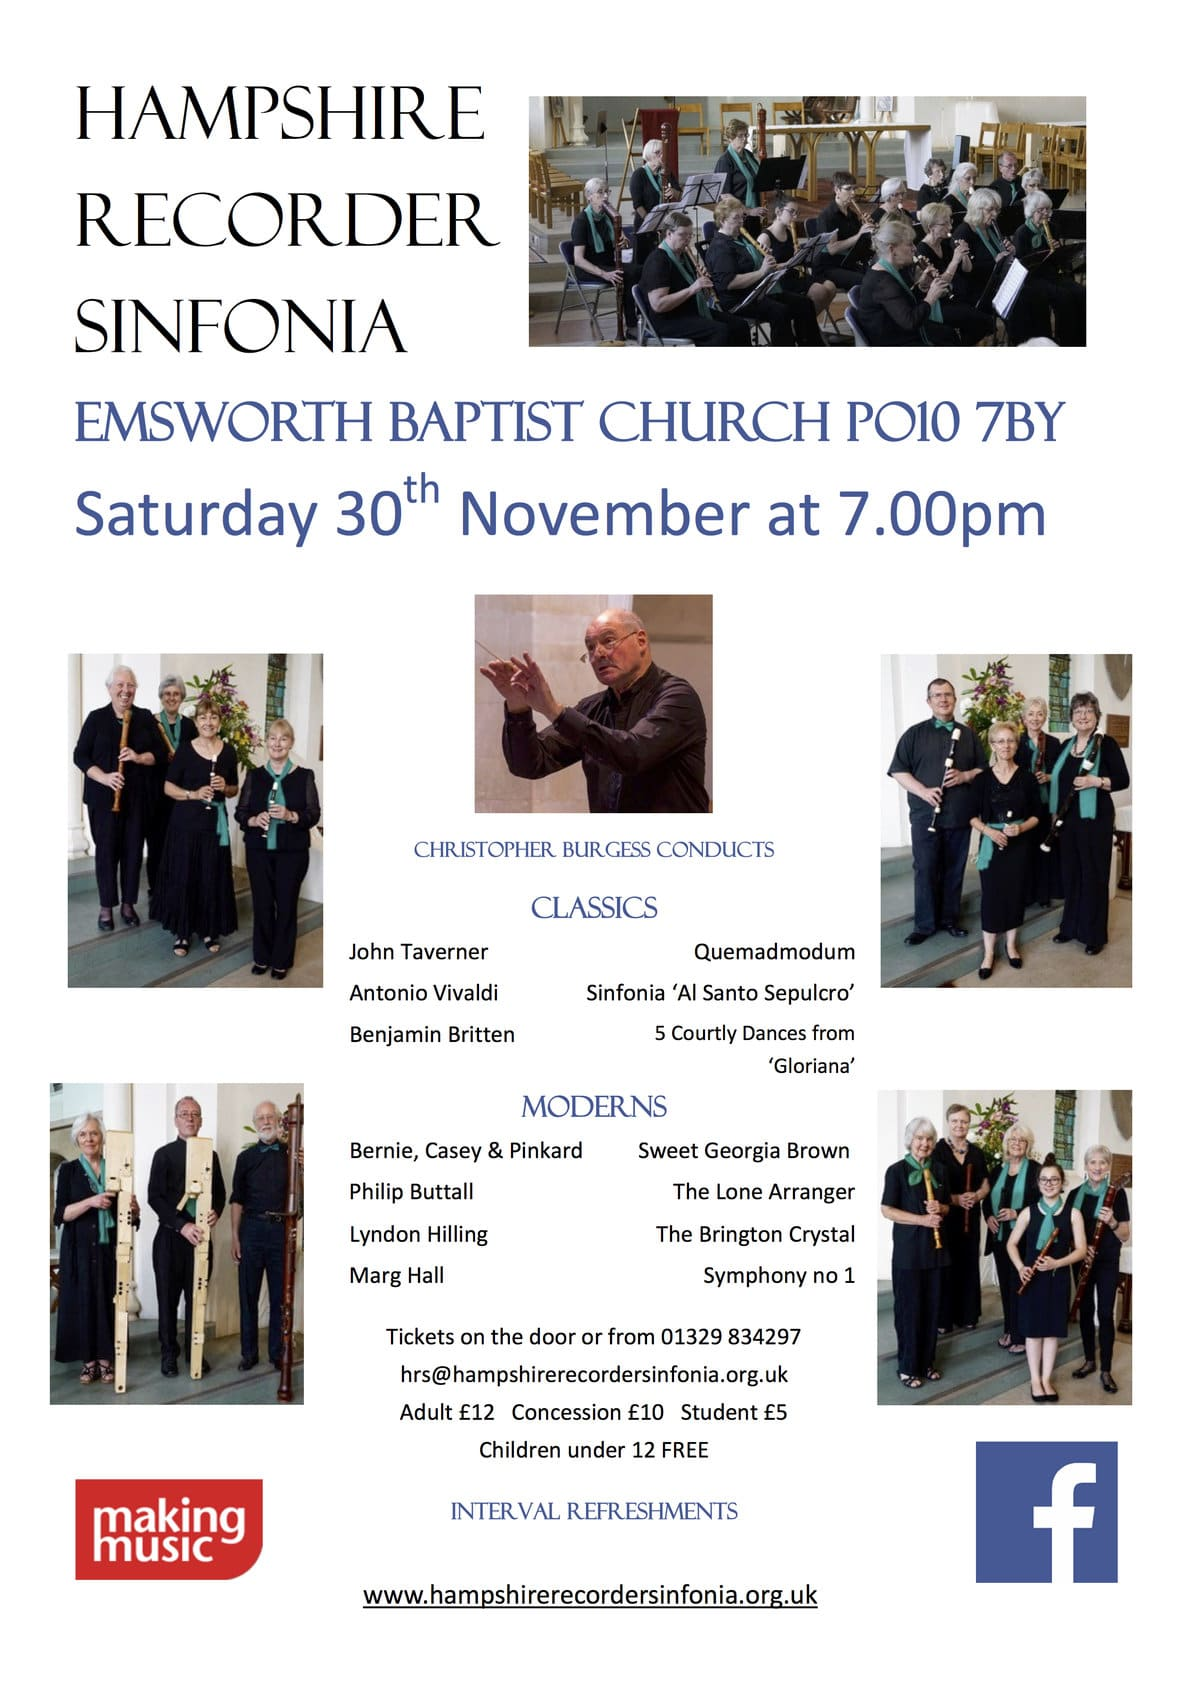 Hampshire Recorder Sinfonia	play at Emsworth Baptist Church - The Hampshire Recorder Sinfonia